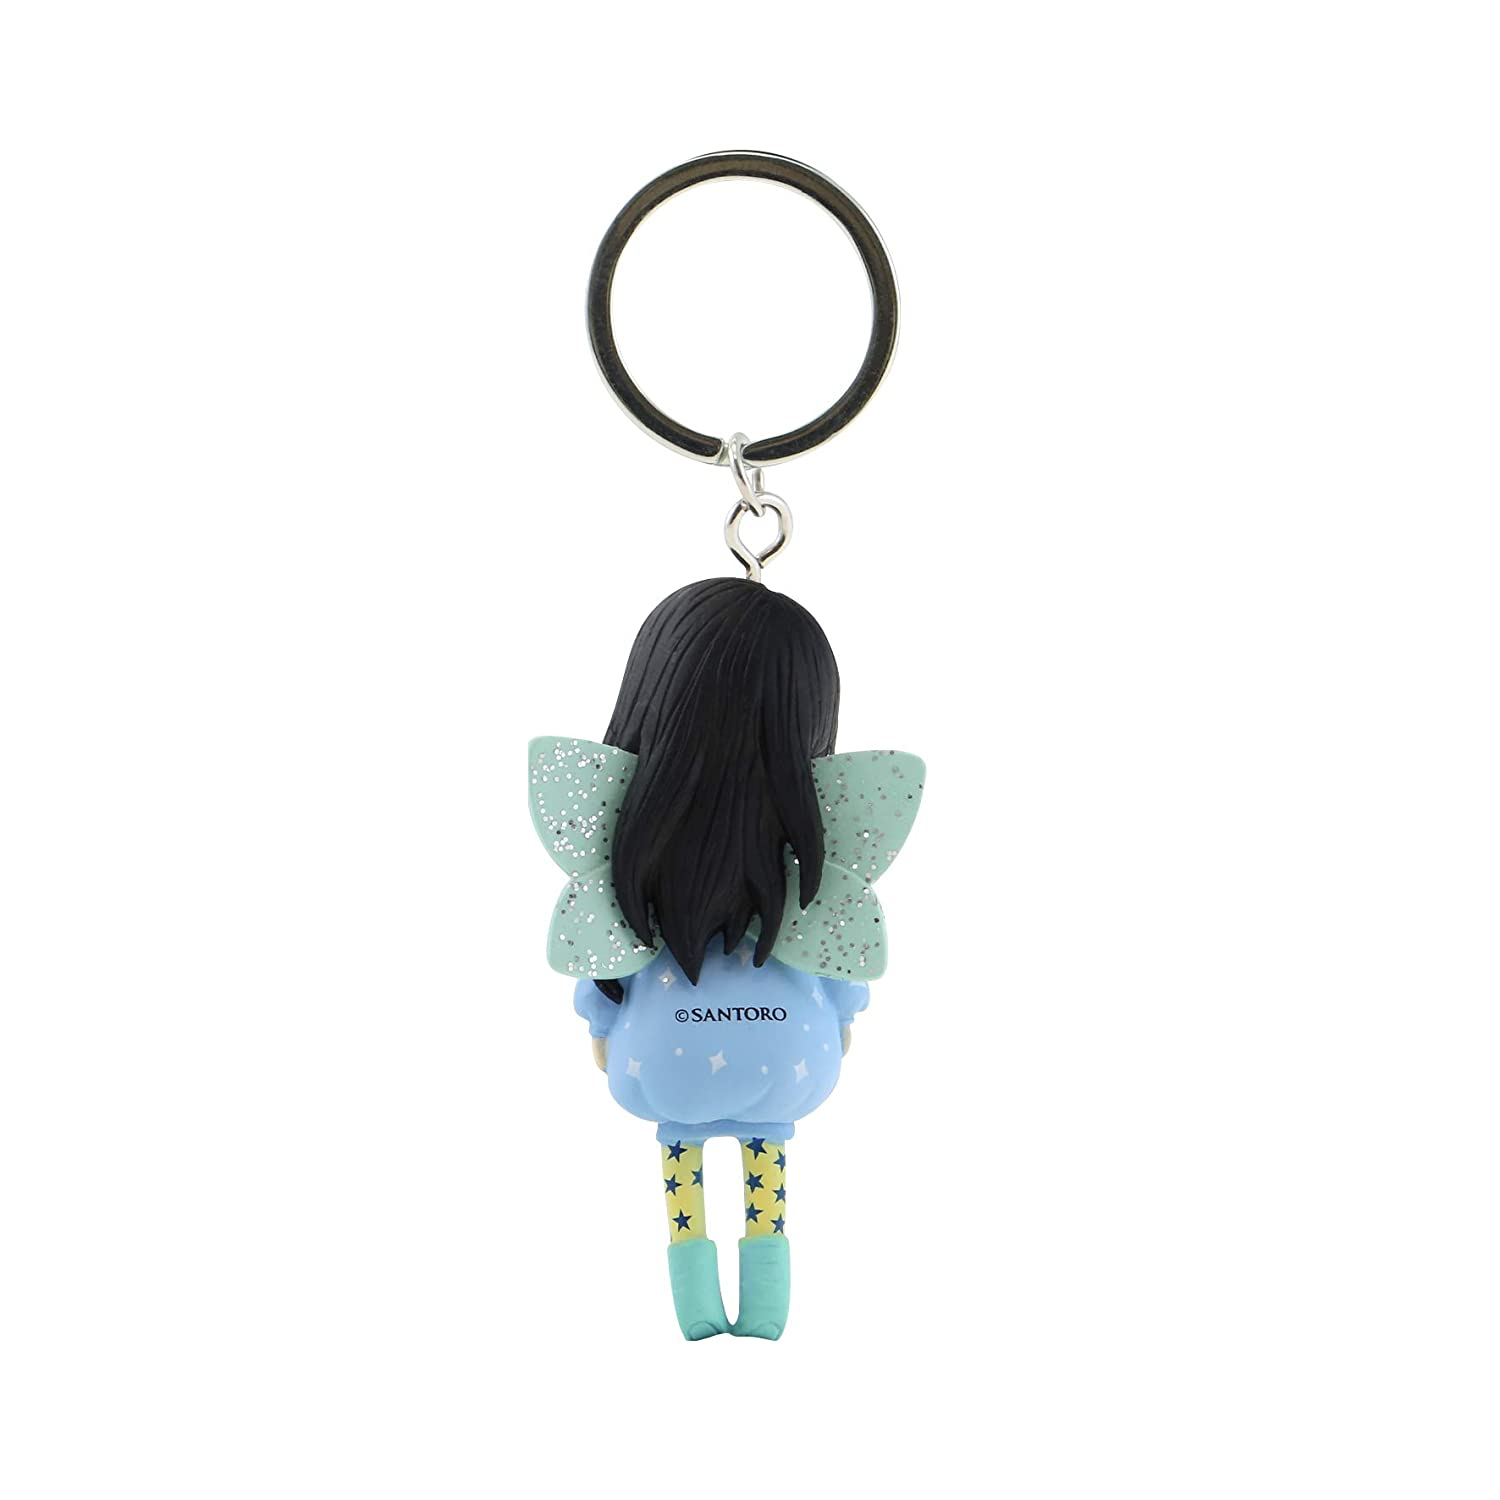 Gorjuss Figurine Keyring 631GJ09 - Bubble Fairy